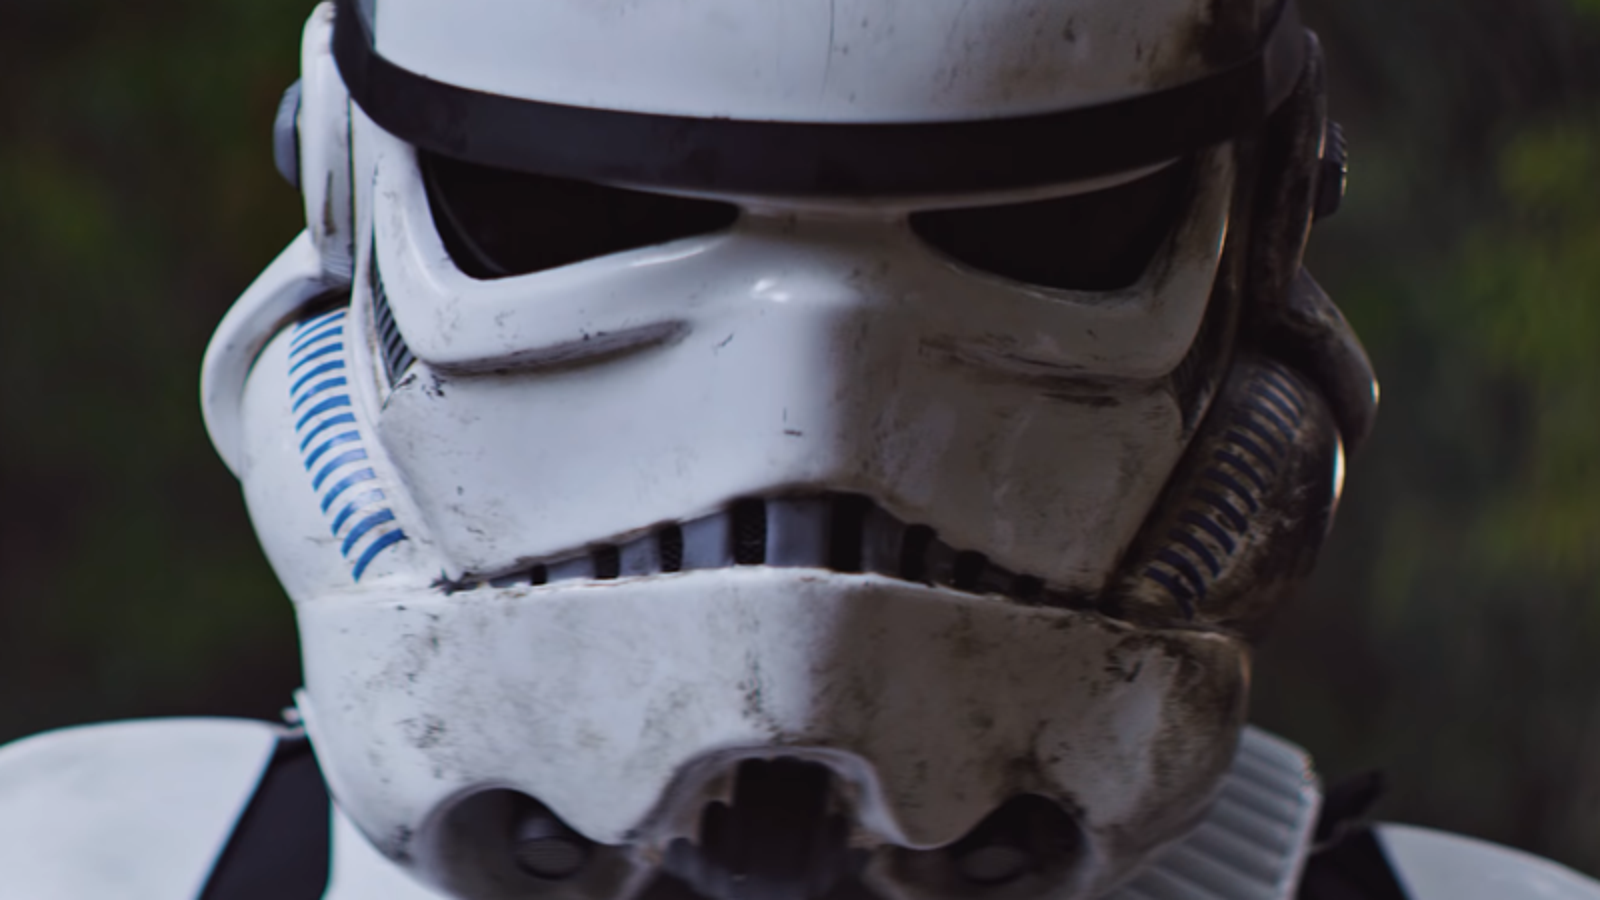 Bucketheads Is a Fan Film That Wants to Give Stormtroopers Their Own Star Wars Story